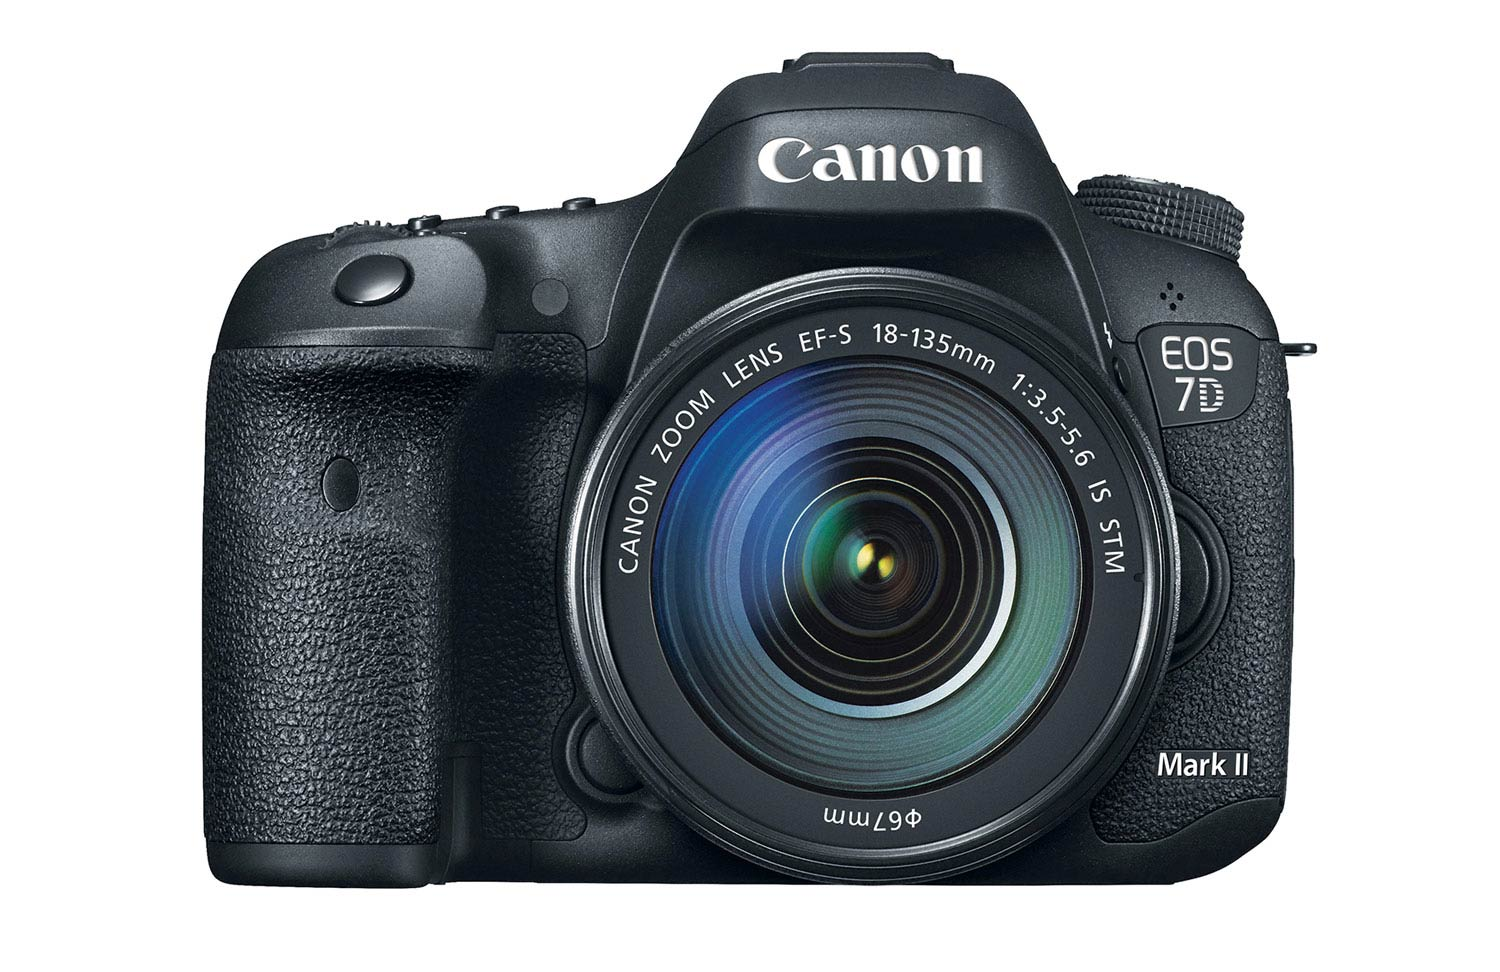 Canon Announces the EOS 7D Mark II, 3 New Lenses